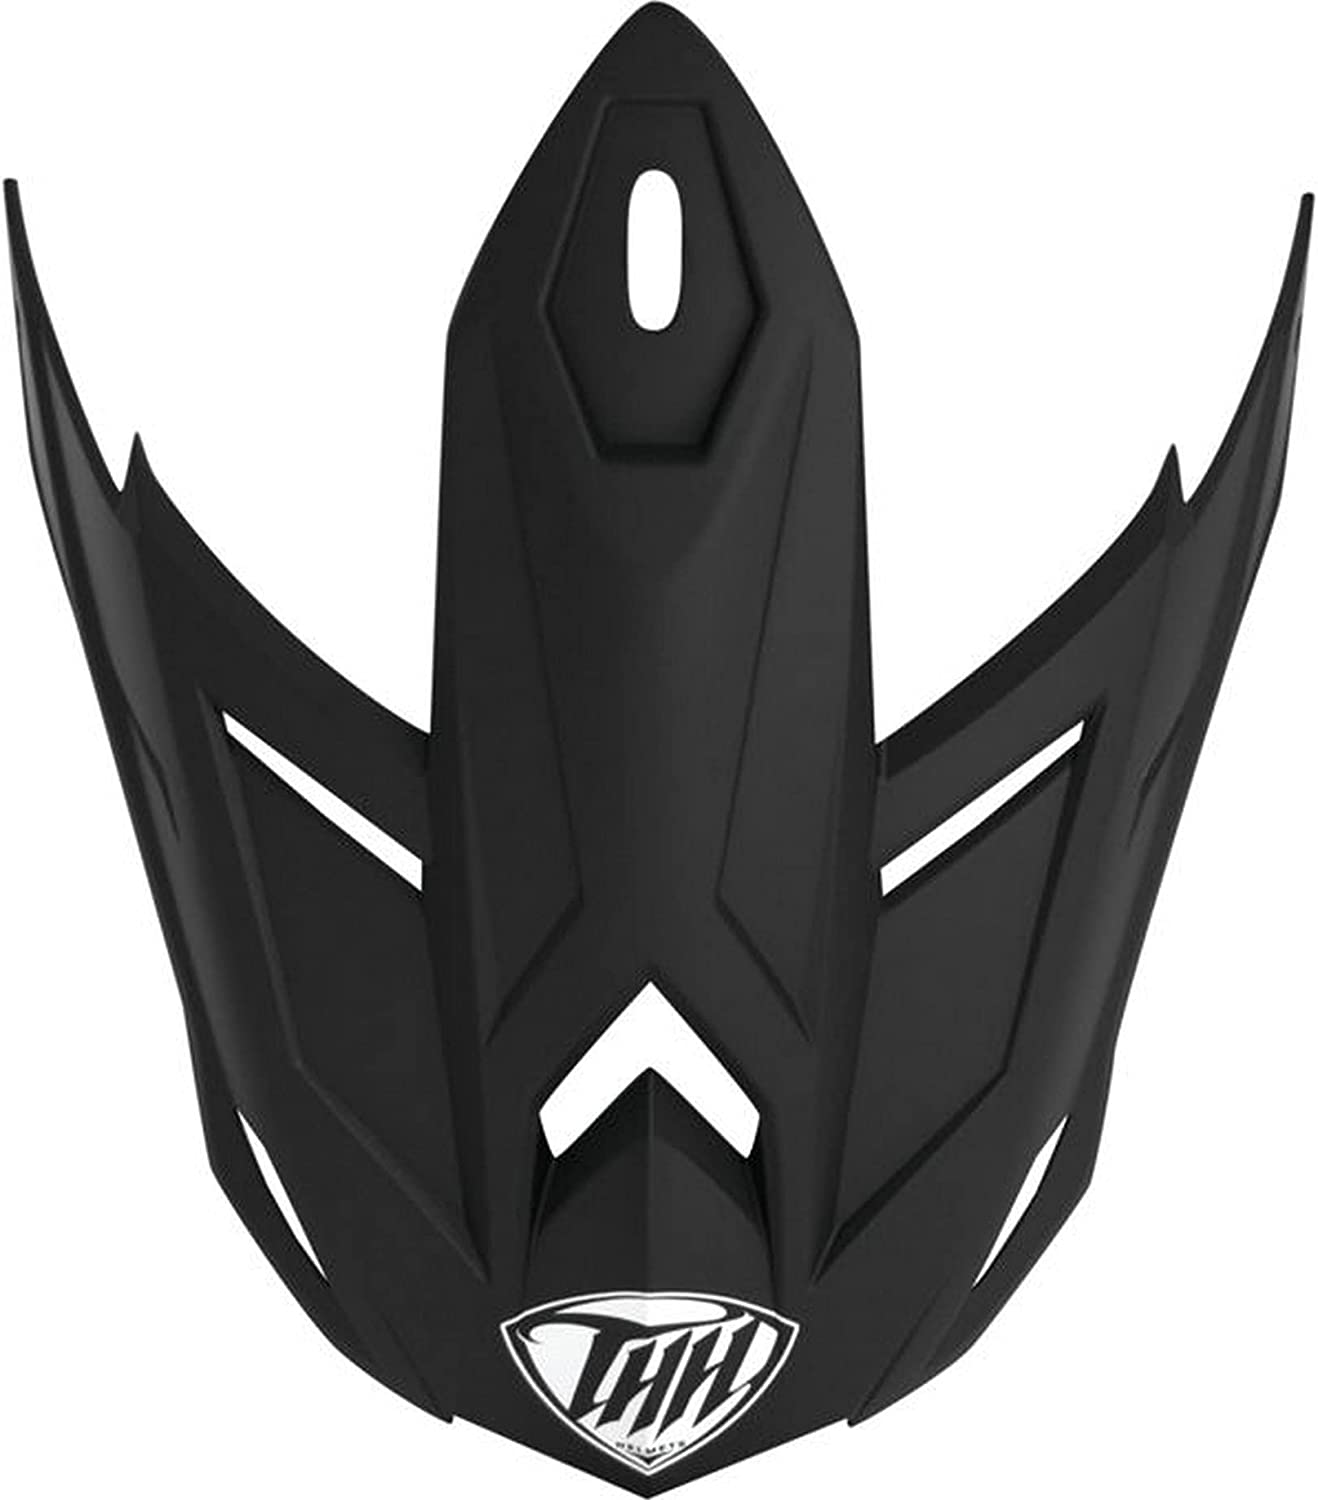 THH T-710X Solid Youth Rare Helmet Replacement Peak Flat Industry No. 1 Visor Black